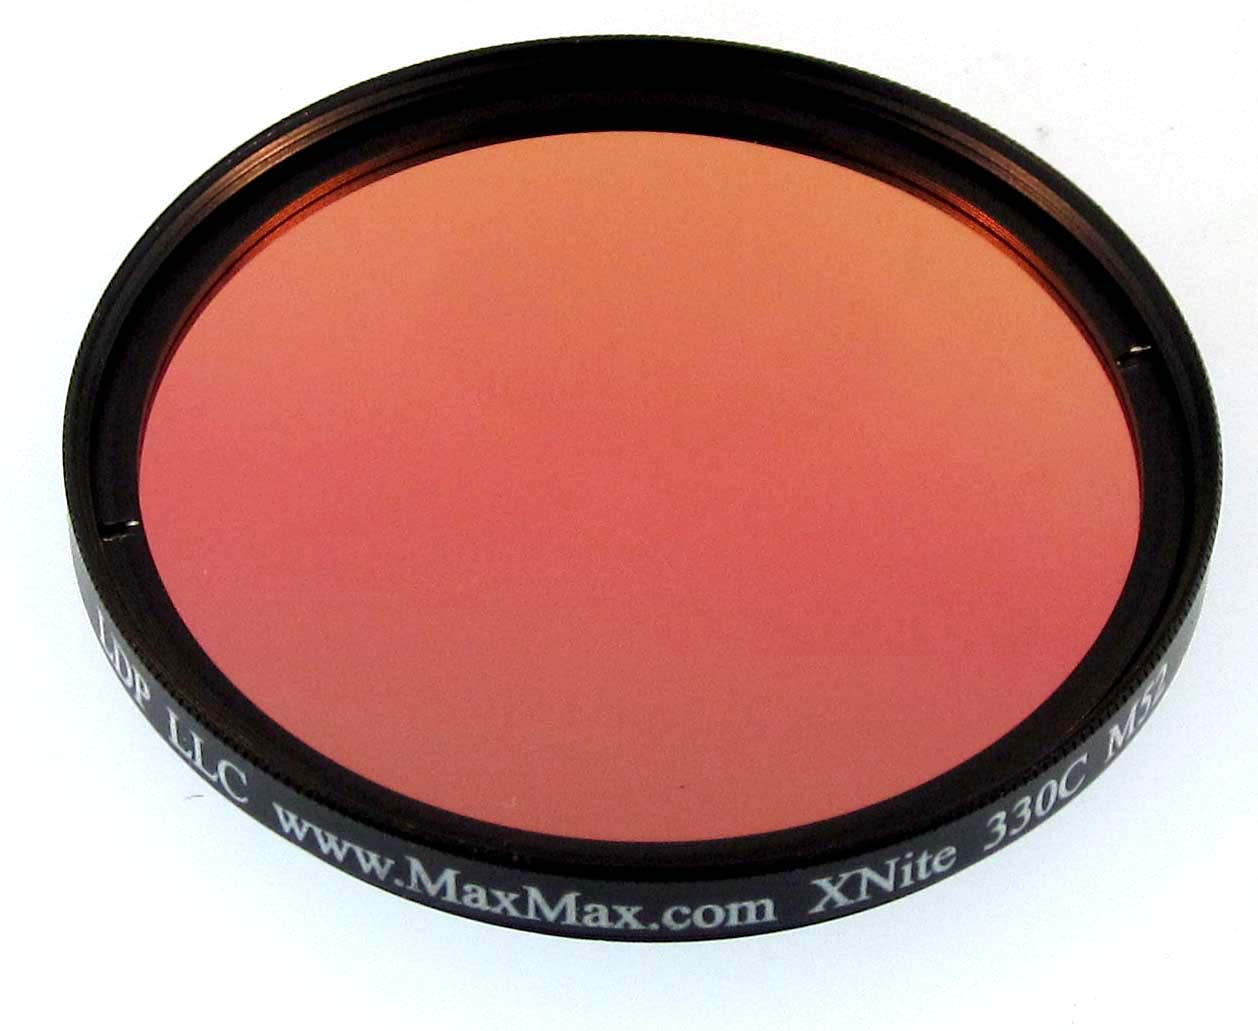 XNite33052C: X-Nite 330nm Coated Filter in 52mm Diameter x 2 2mm Thick